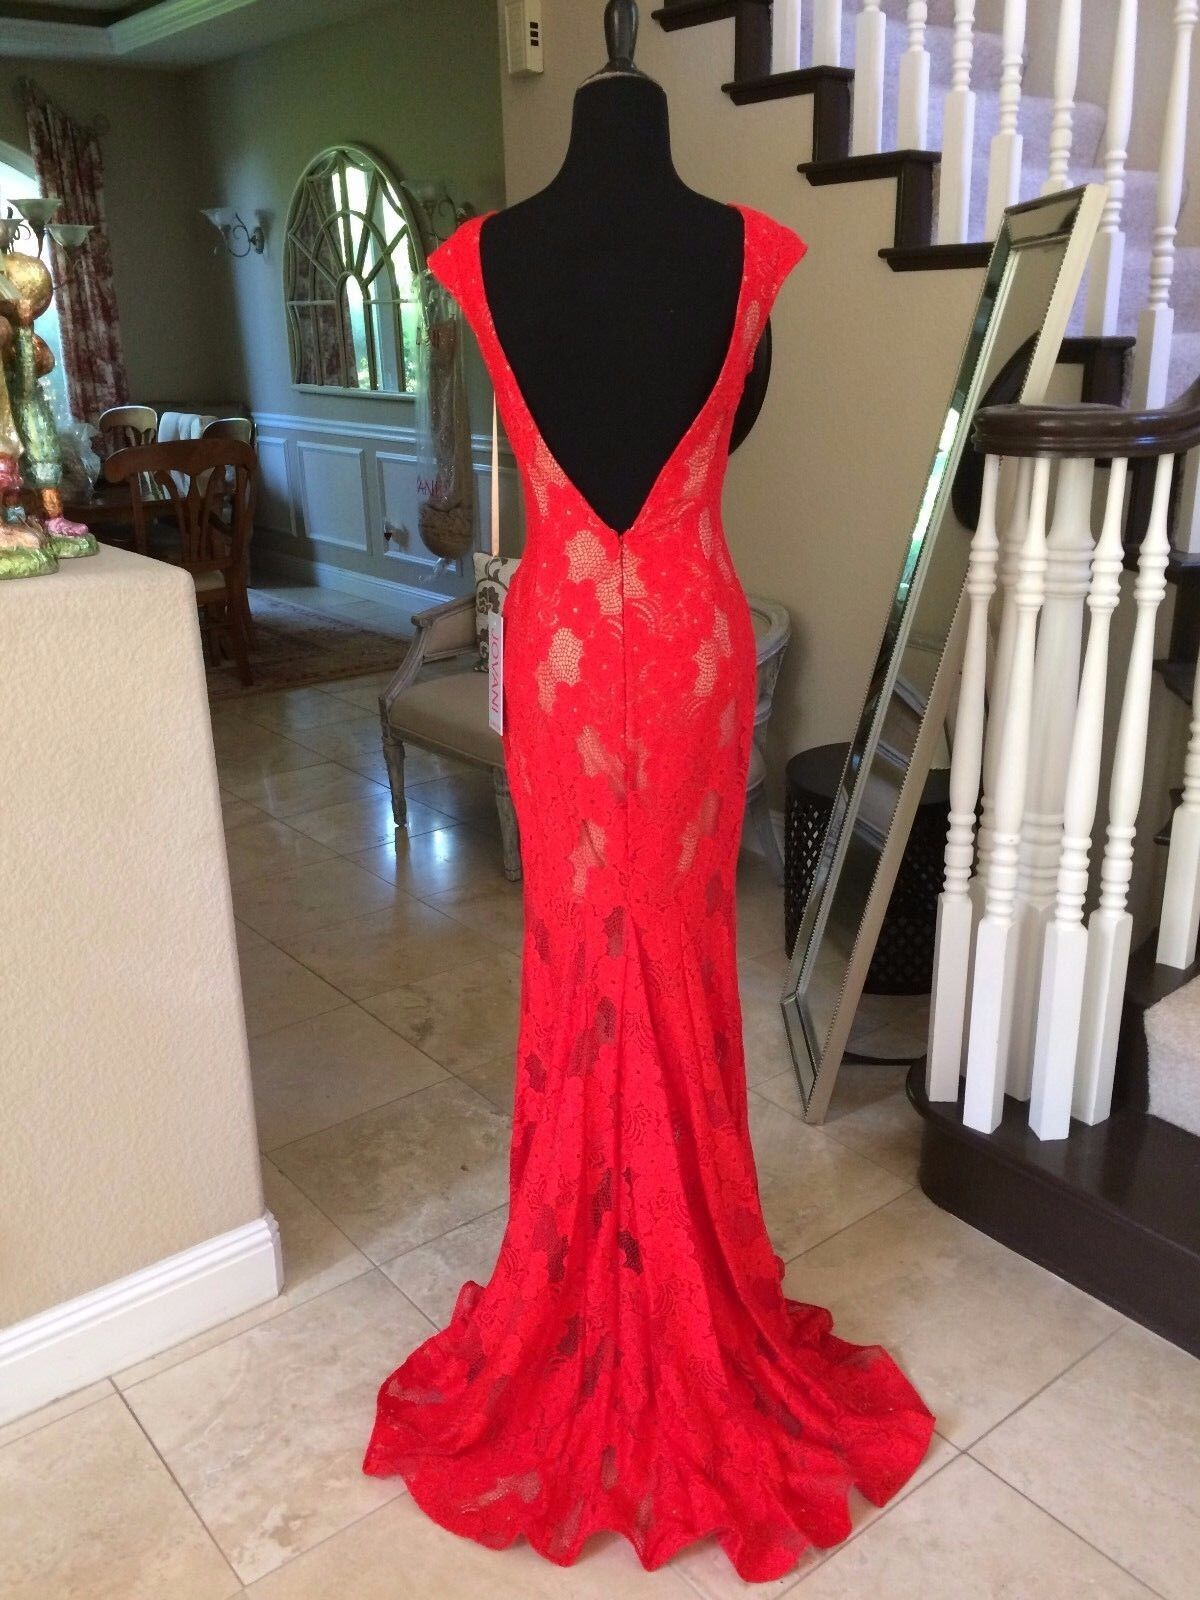 590 NWT RED LACE JOVANI PROM PROM PROM PAGEANT FORMAL DRESS GOWN SIZE 6 c22a77